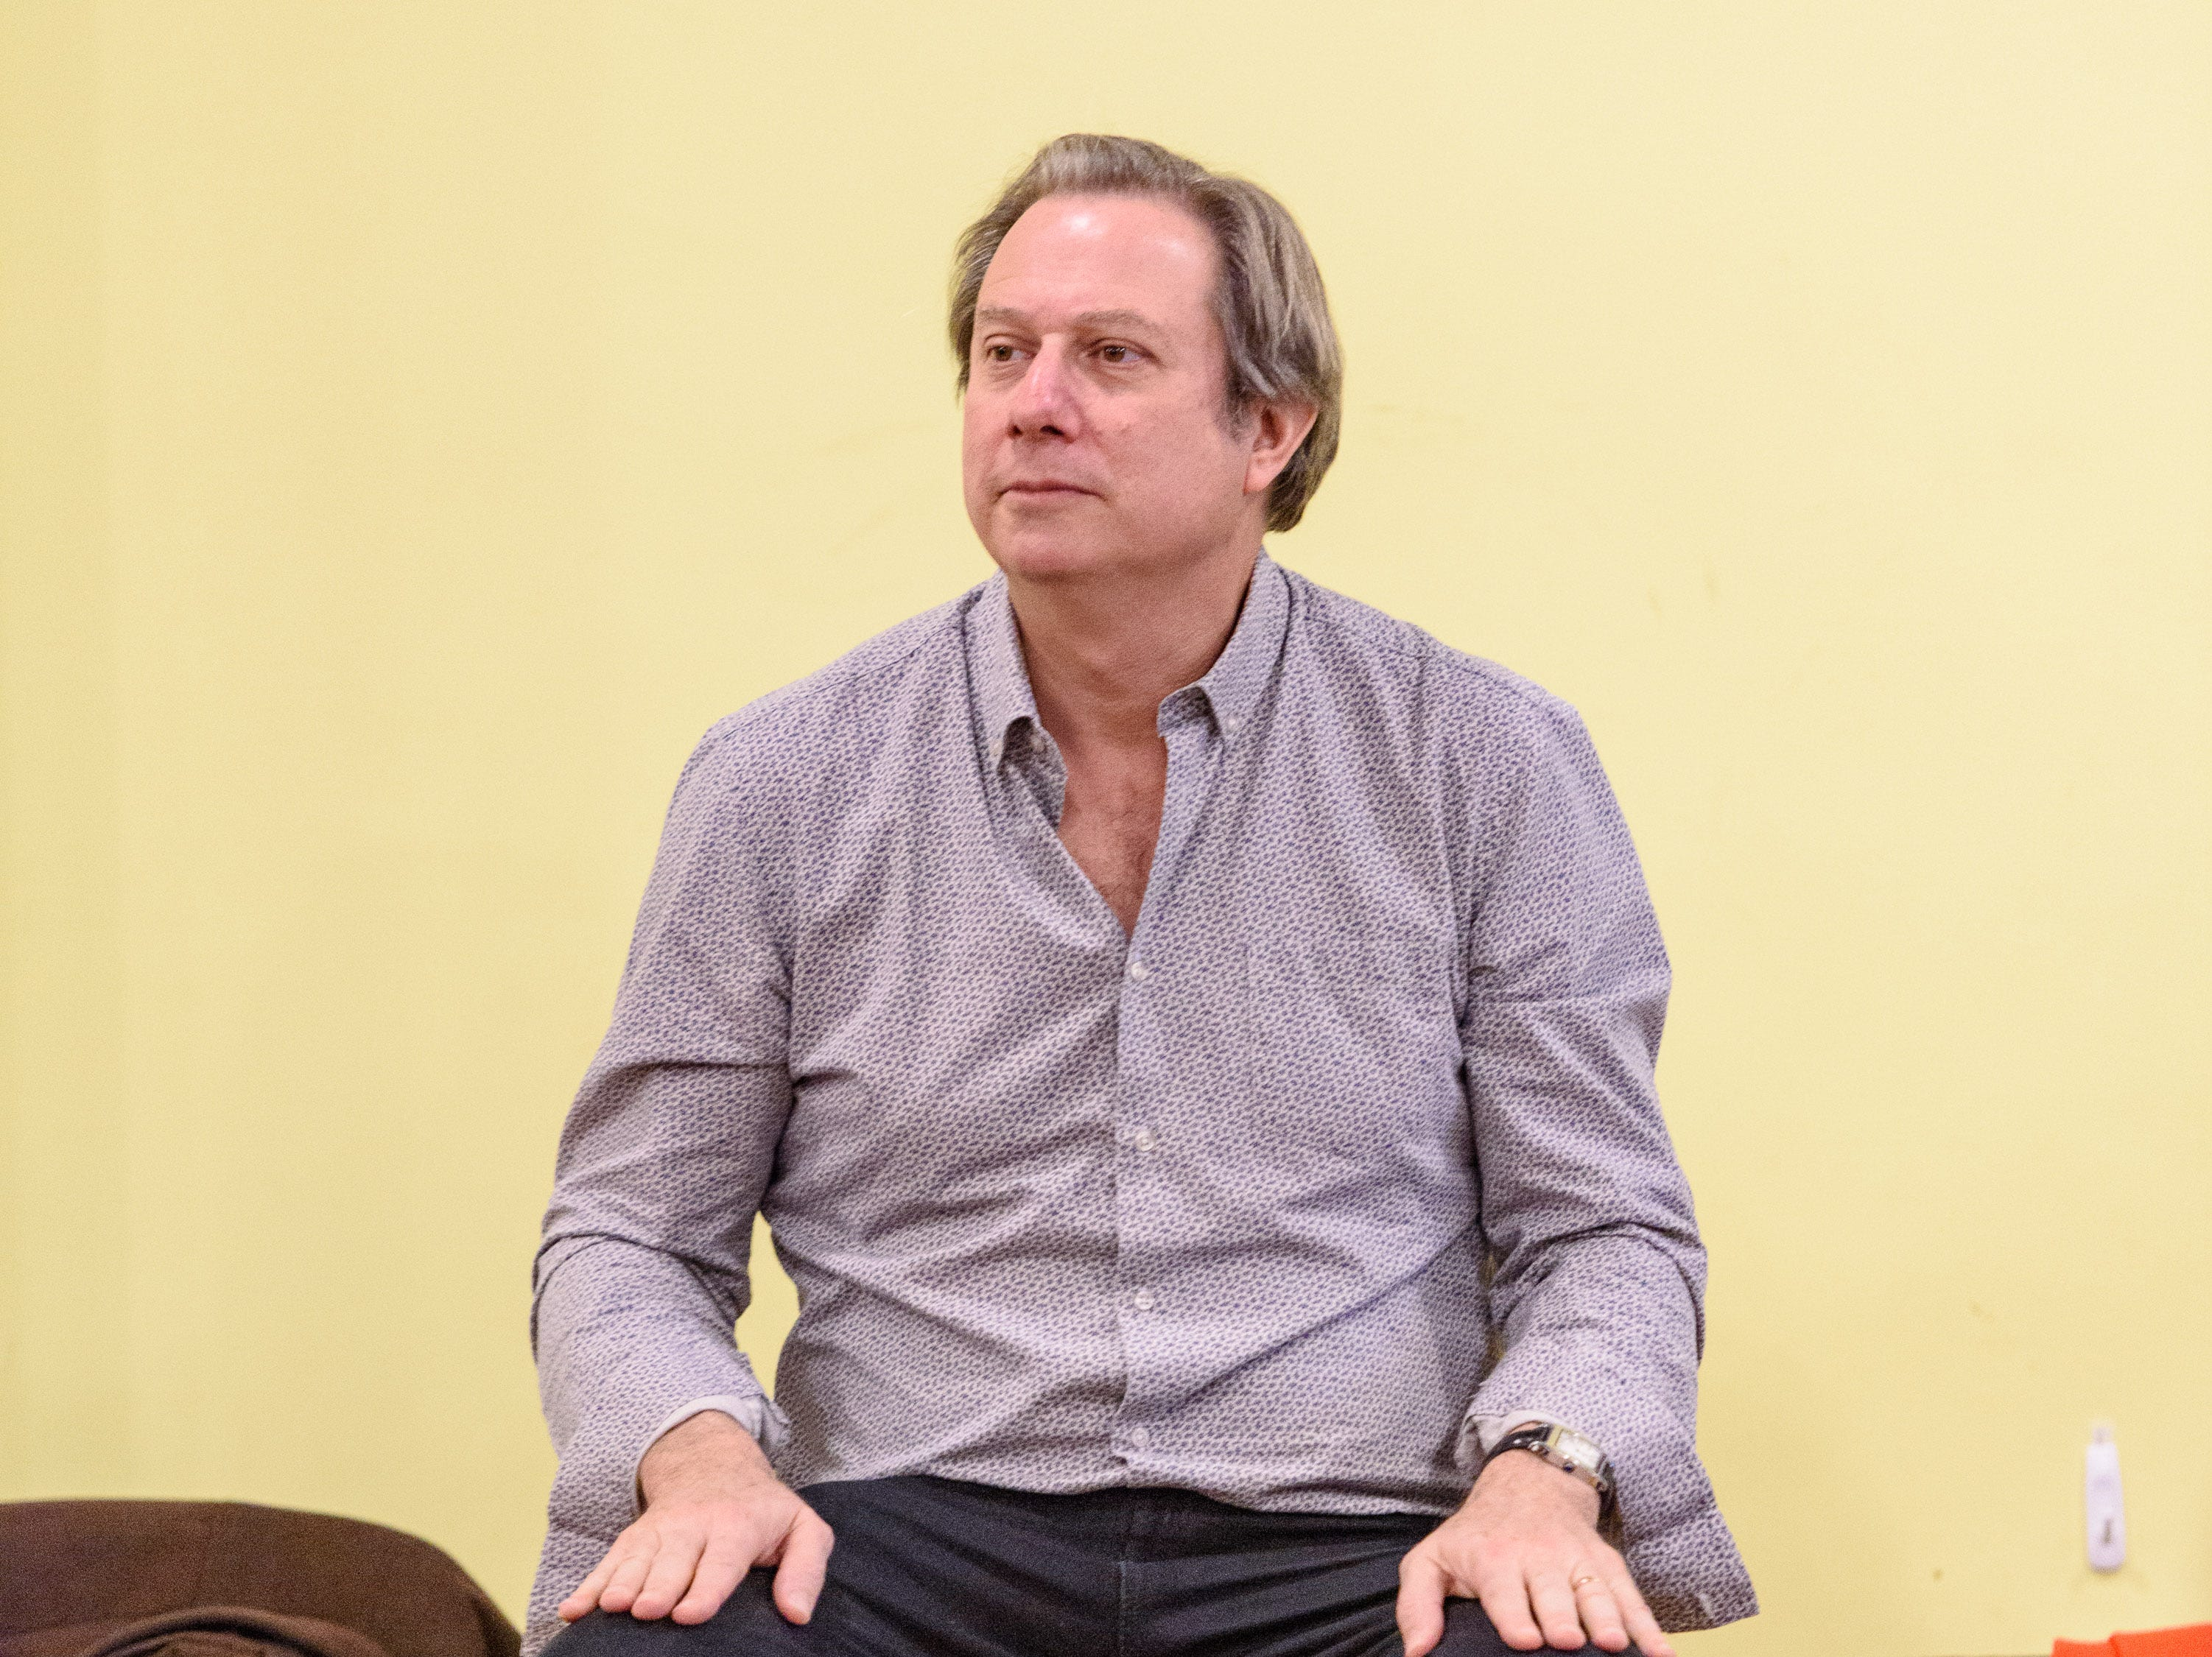 David Stern conducts in Kentucky Opera's production of ÒEnemies, A Love Story,Ó in their rehearsal space at the Brown Theater. Oct. 27, 2018